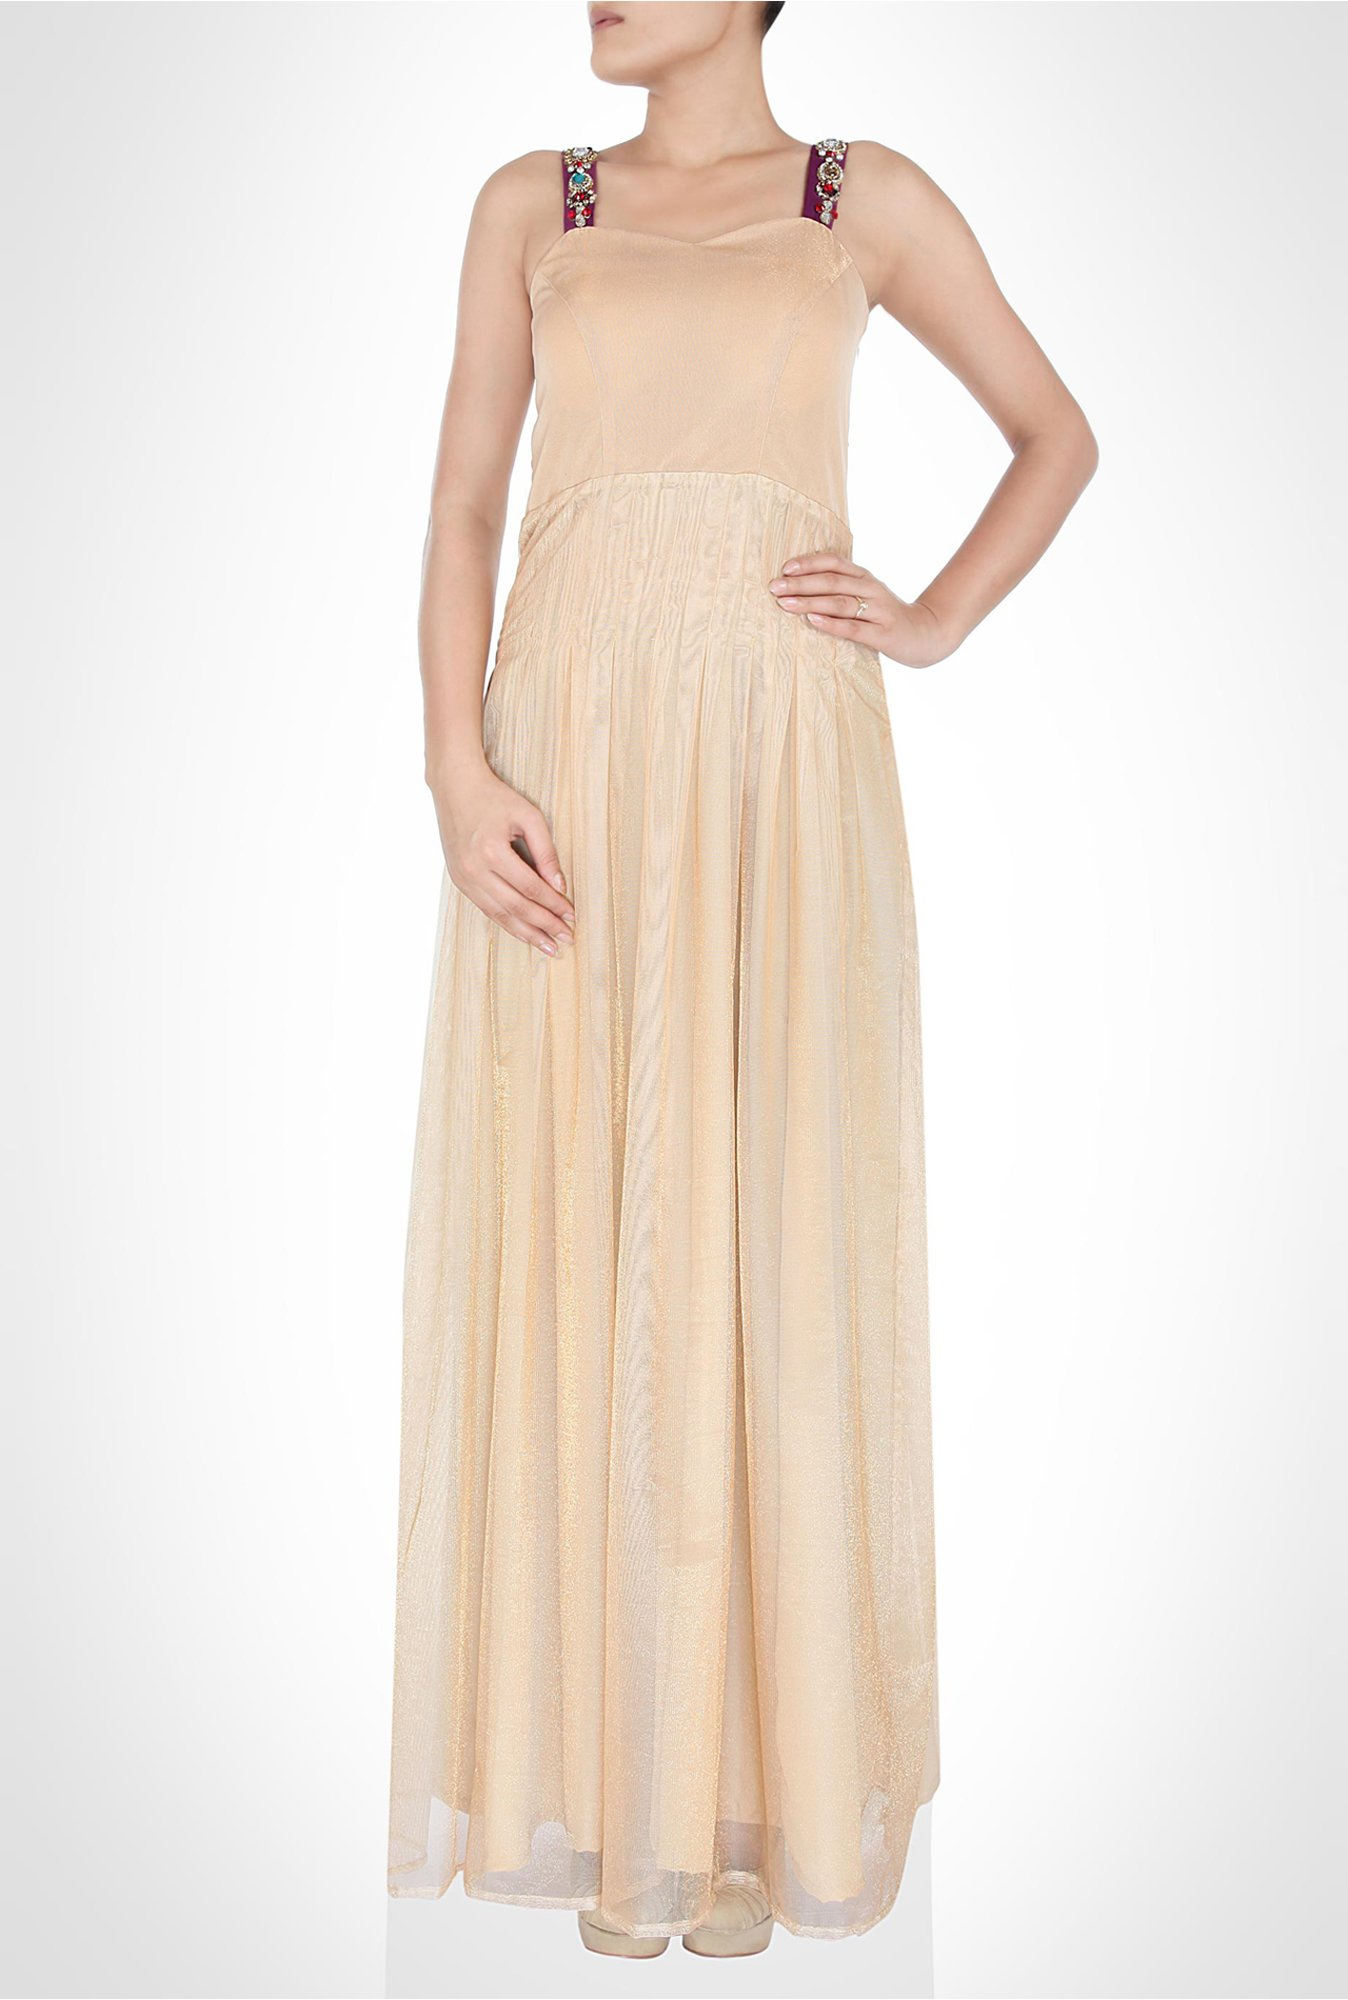 Masumi Mewawalla Designer Wear Beige Maxi Dress by Kimaya